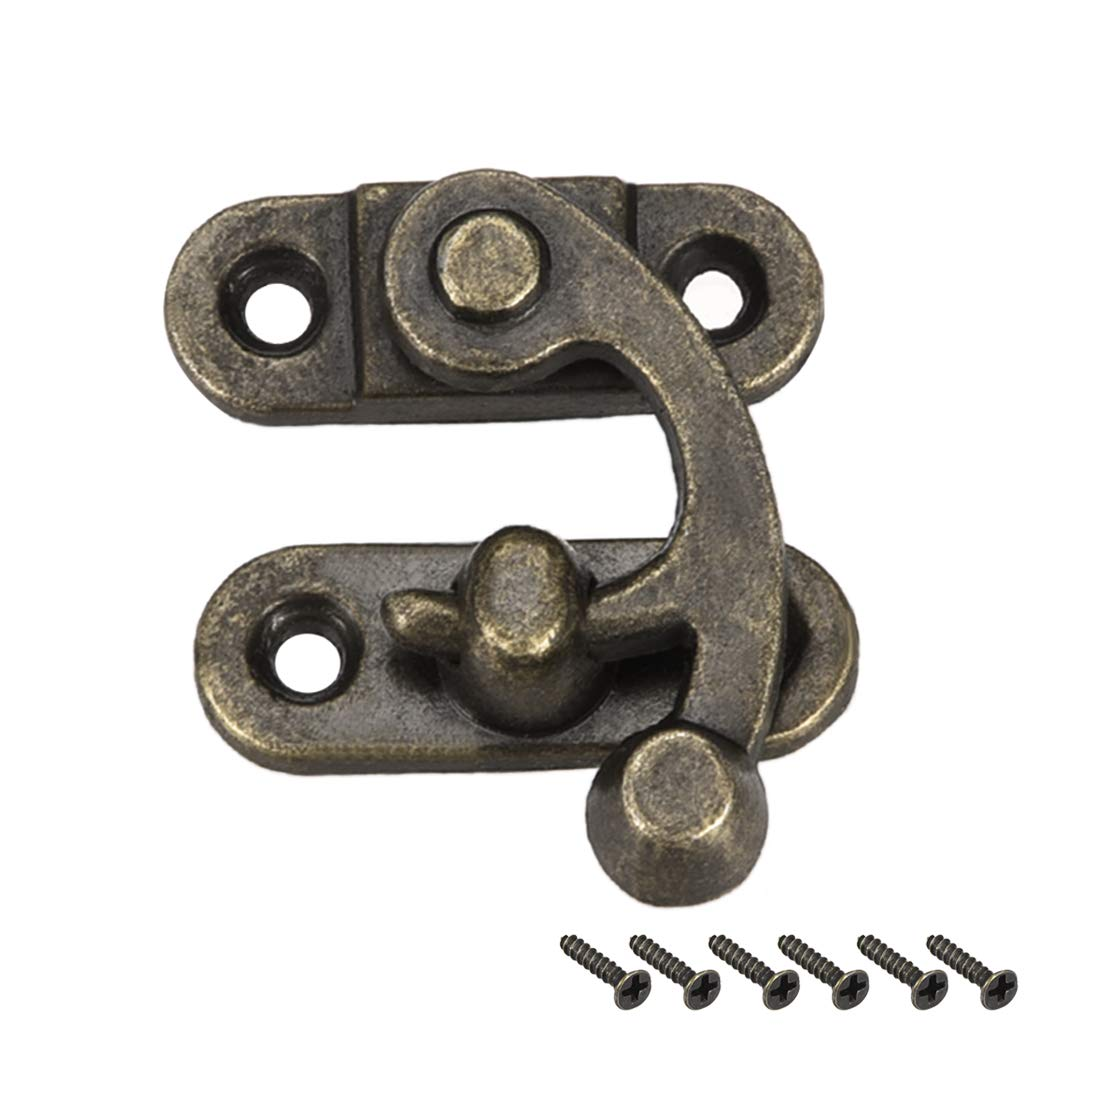 sourcing map Antique Right Latch Hook Hasp, Swing Arm Latch Plated Bronze 5 pcs w Screws (42mm x 36mm)